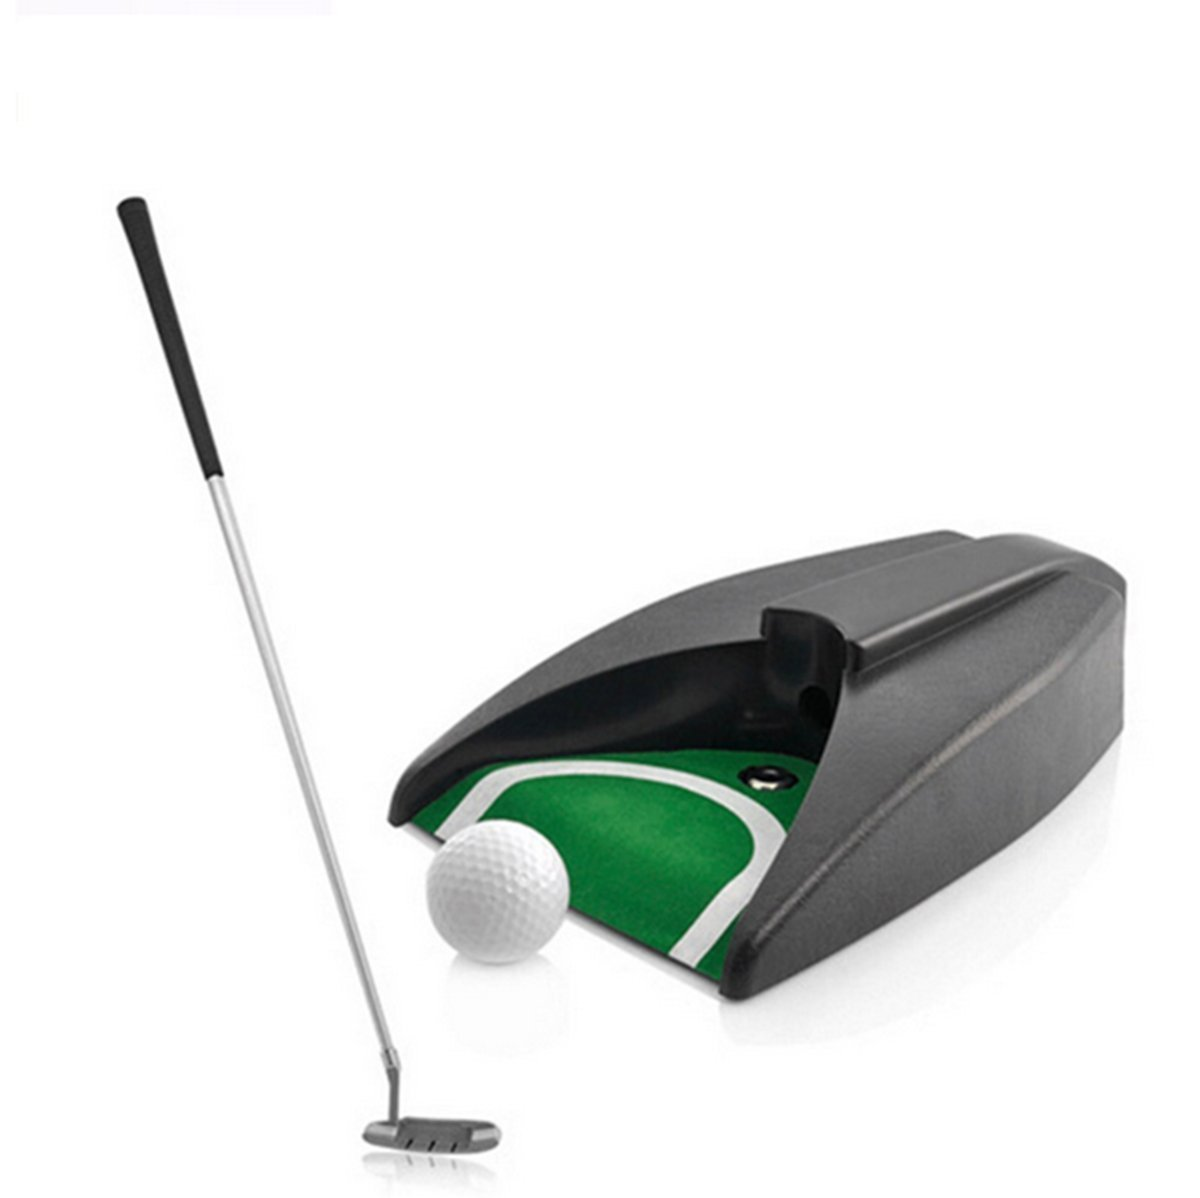 Yosooo Automatic Putt Return Machine Training Golf Ball Kick Back Return Putting Cup Device Golf Auto Return System for Golf Practice Indoor Outdoor Yard Office